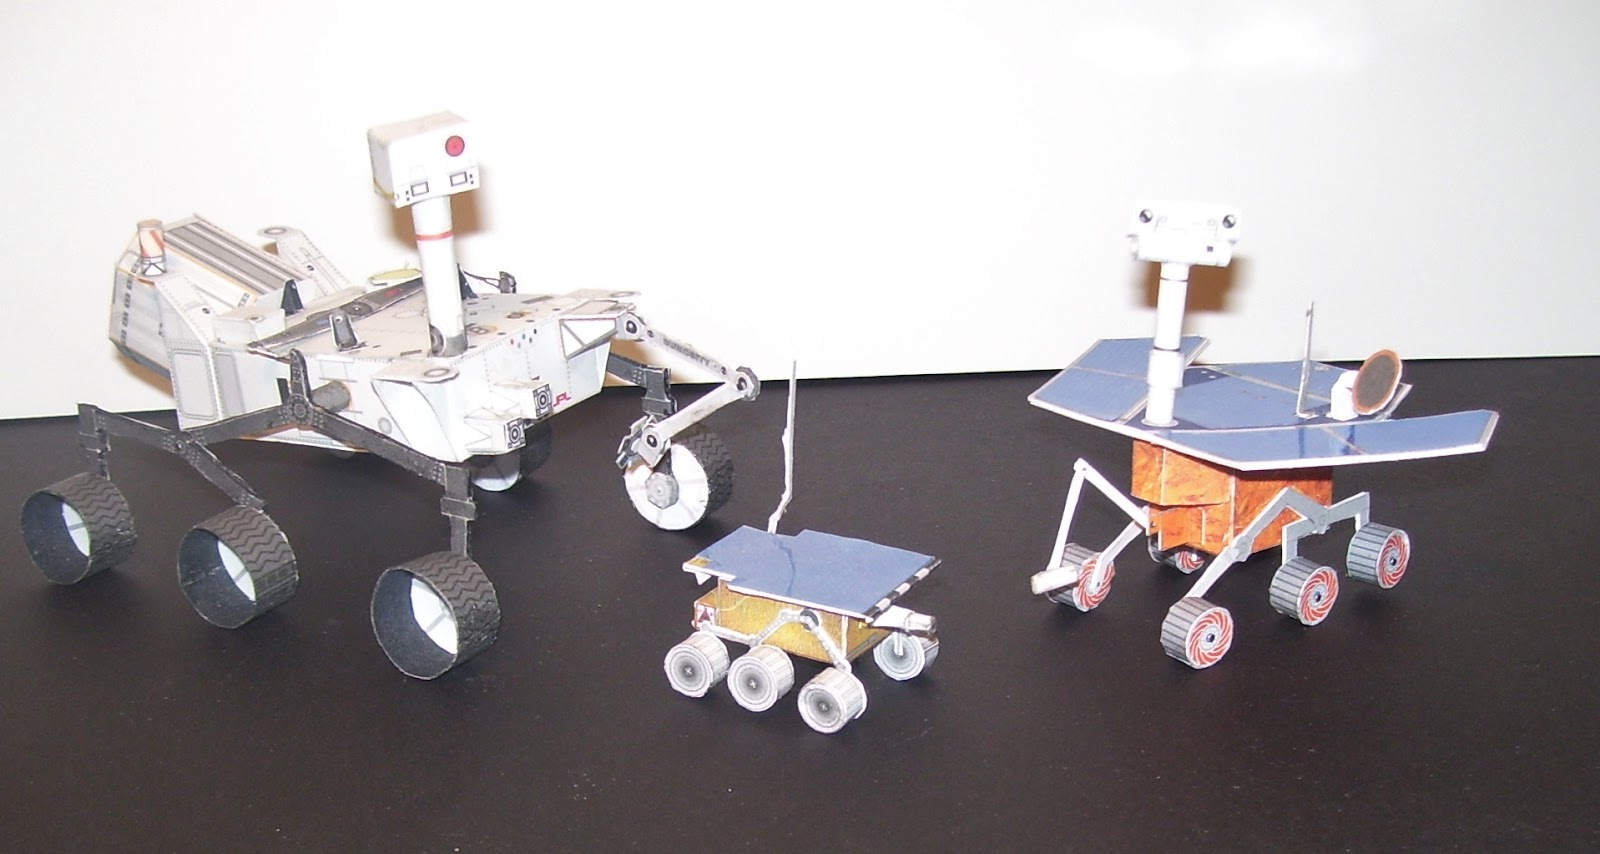 curiosity rover scale model - photo #42